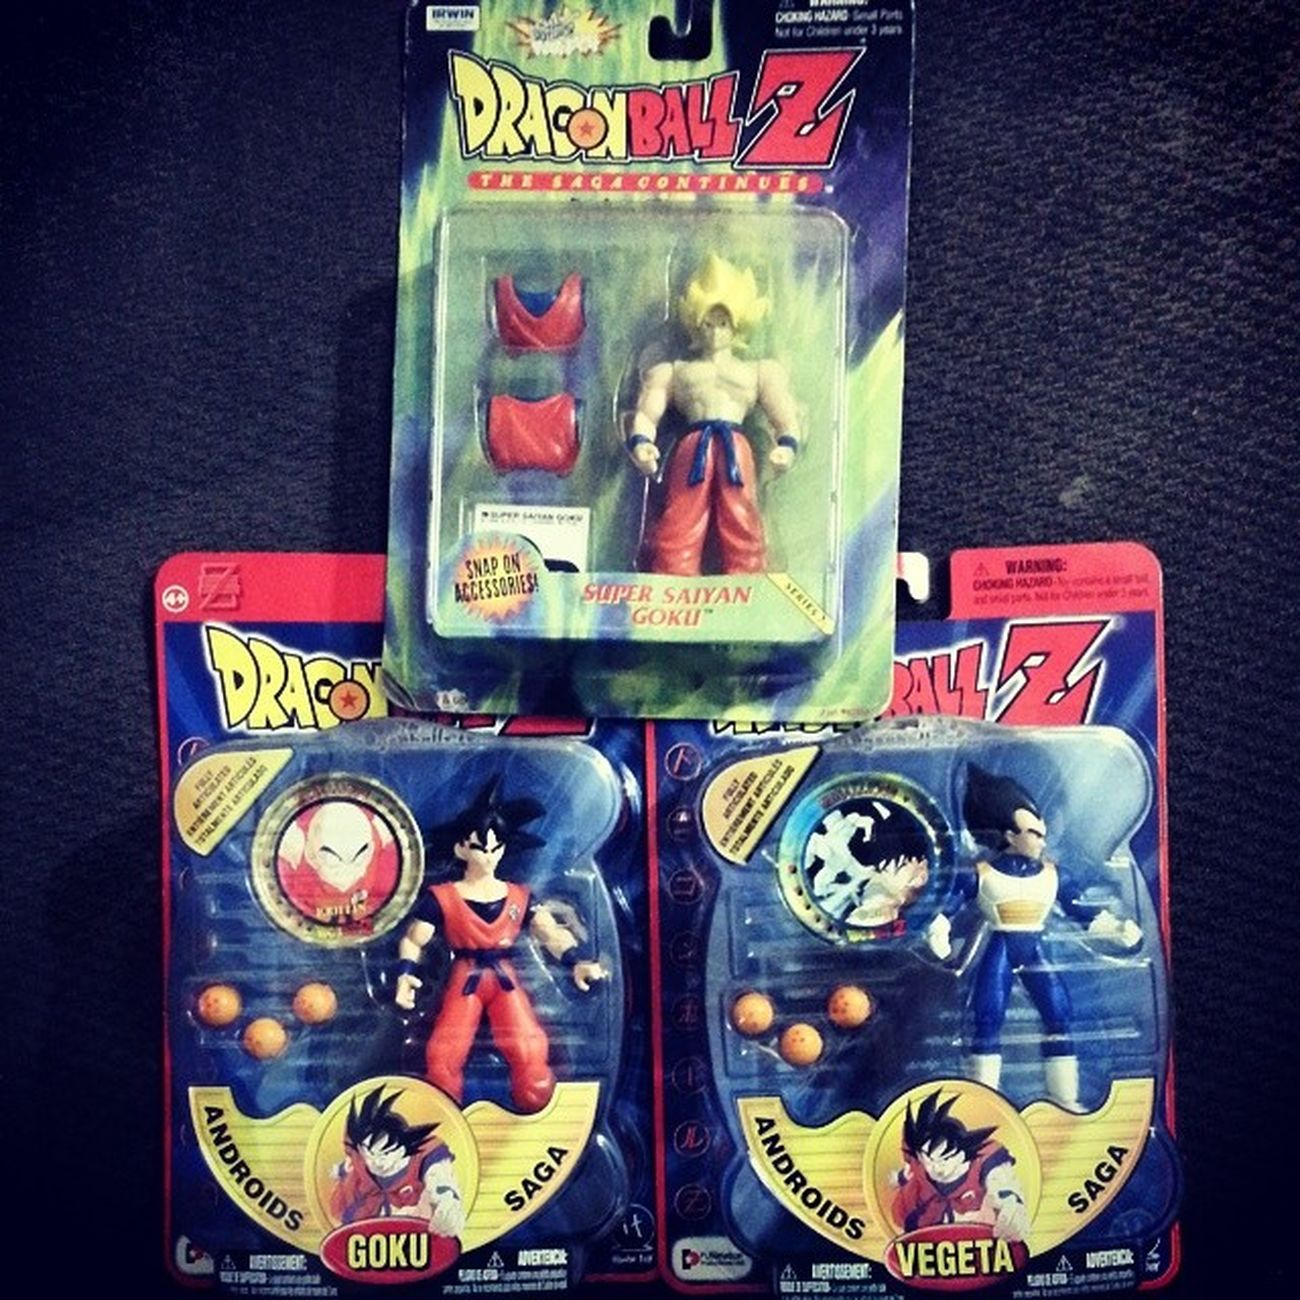 Dragonballz Vintage Goku Vegetta supersaiyangoku cartoonnetwork toddler birthday bigfour